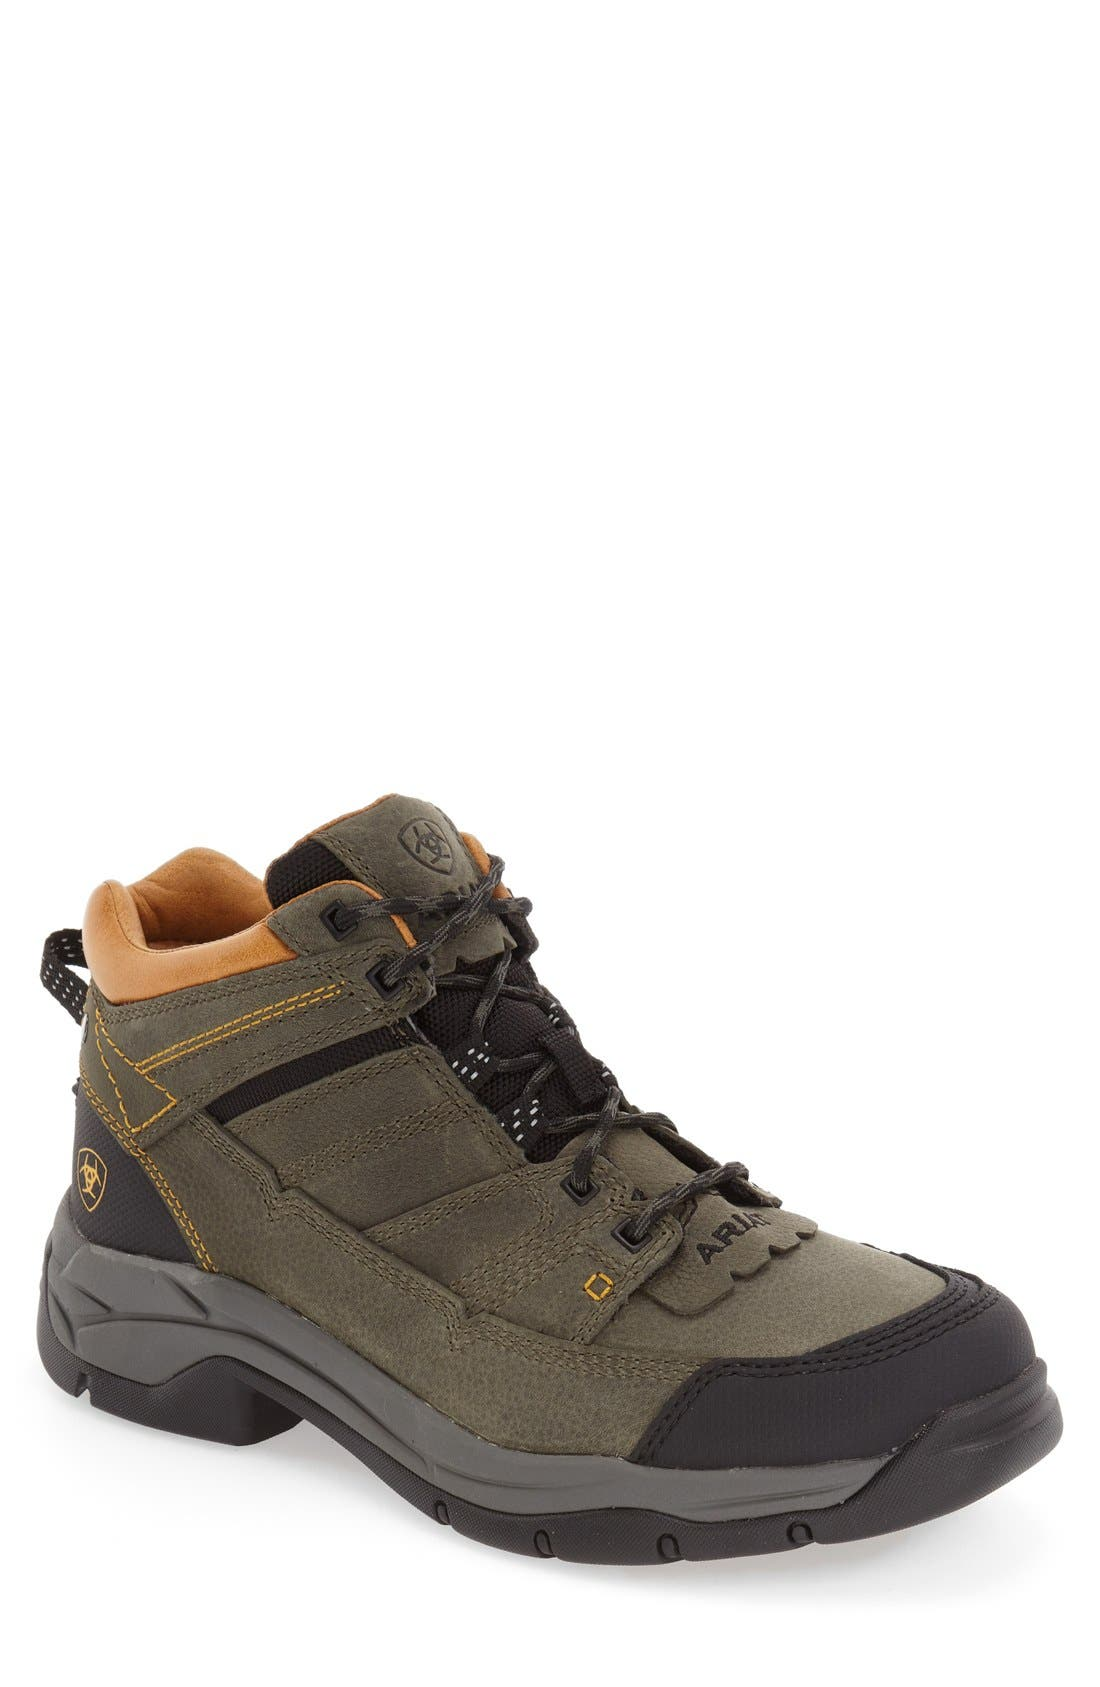 'Terrain Pro' Waterproof Hiking Boot,                         Main,                         color, 020